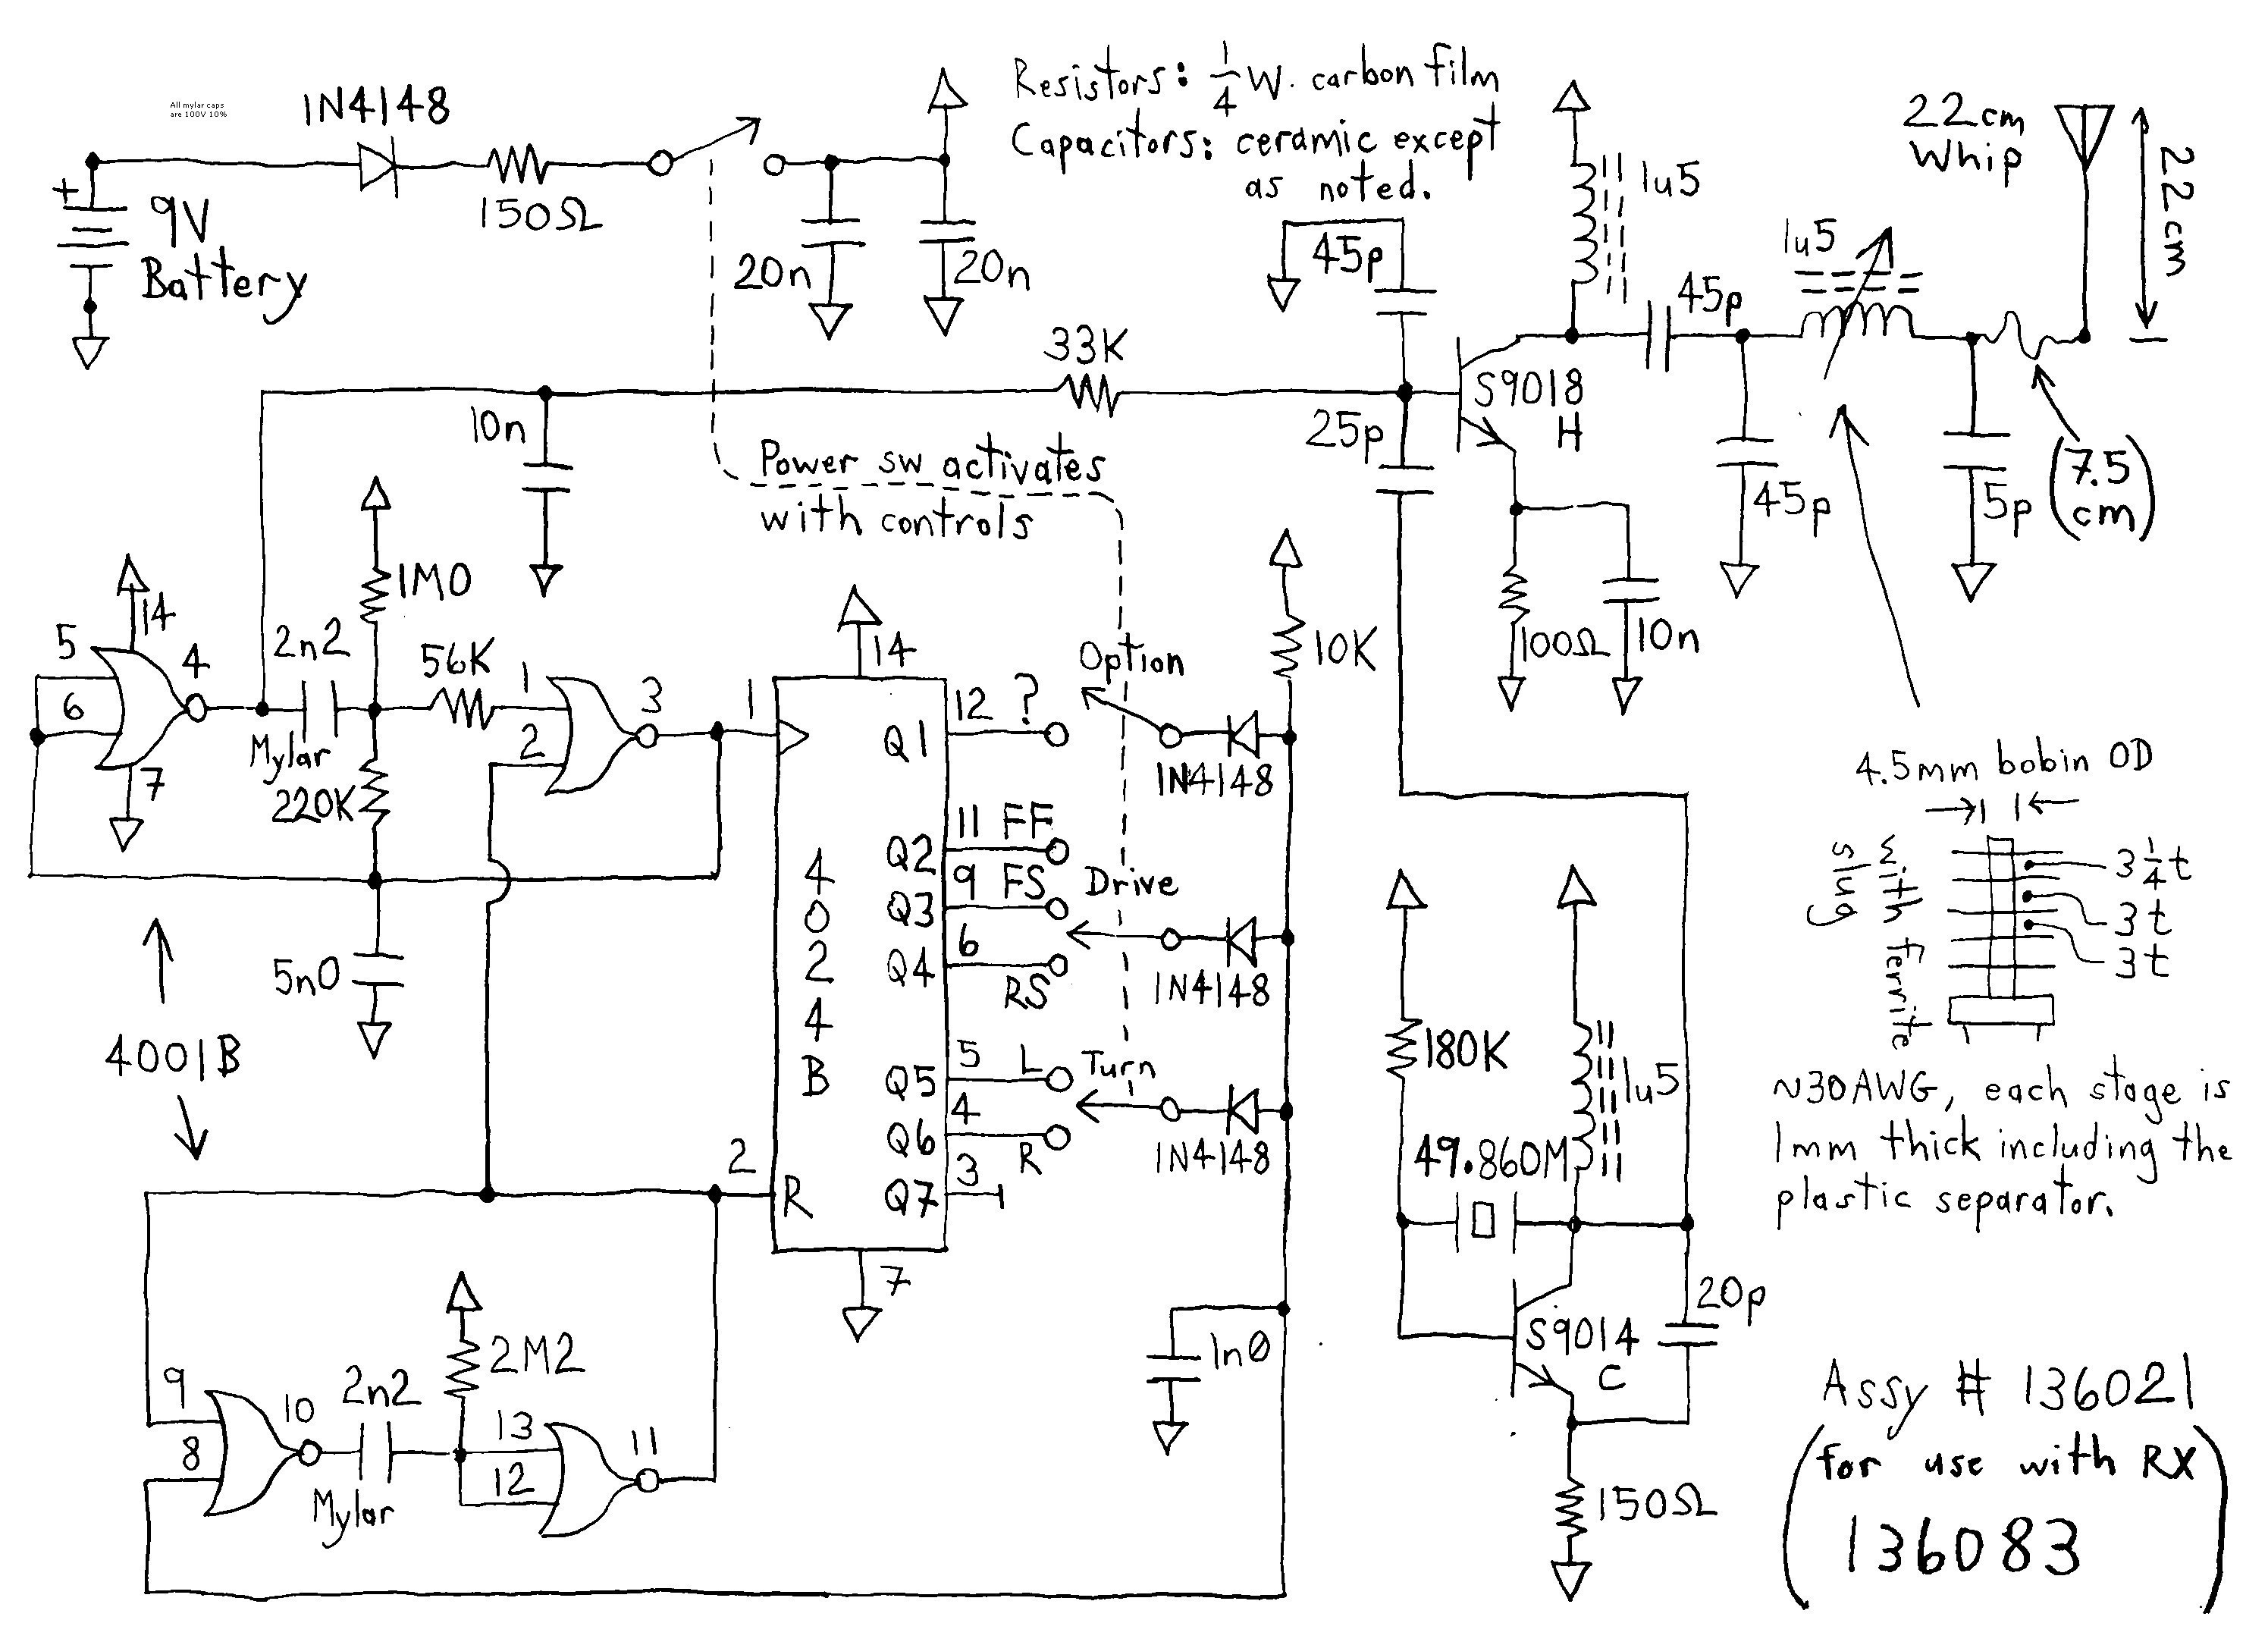 Kawasaki Bayou 220 Engine Diagram Wiring Diagram Kawasaki ... on